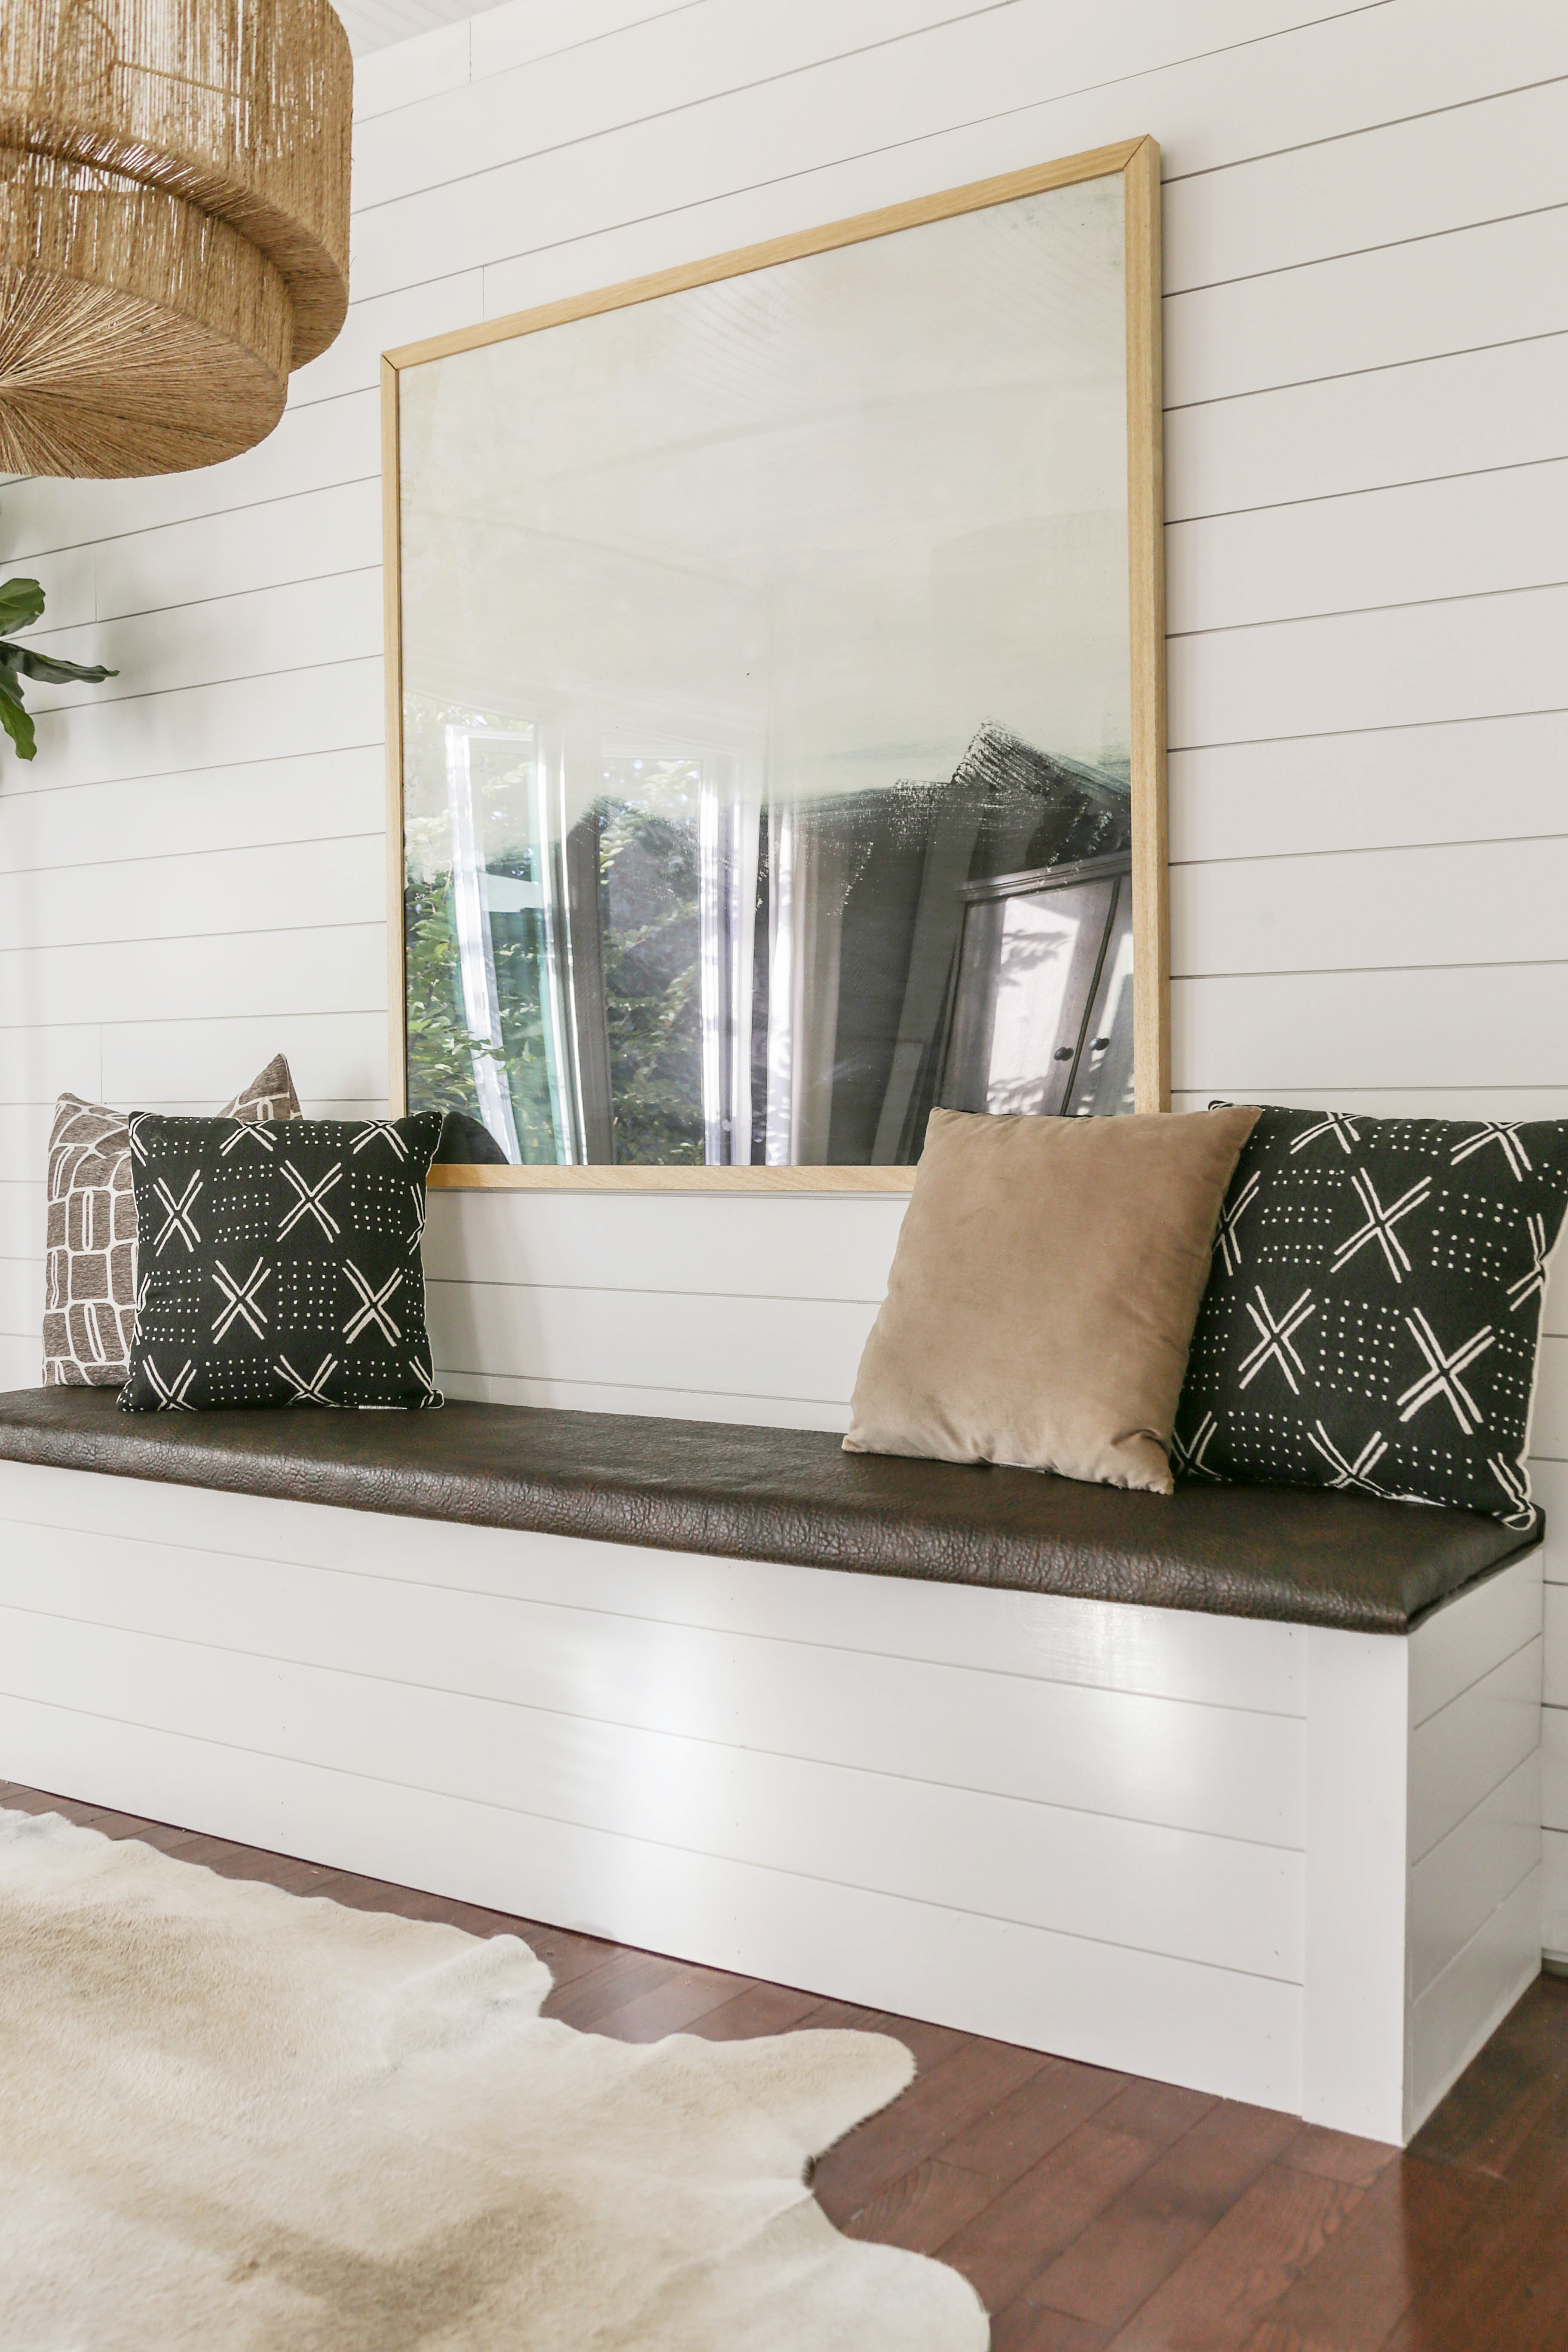 DIY Built-In Dining Bench with Storage - Breakfast Nook Banquette